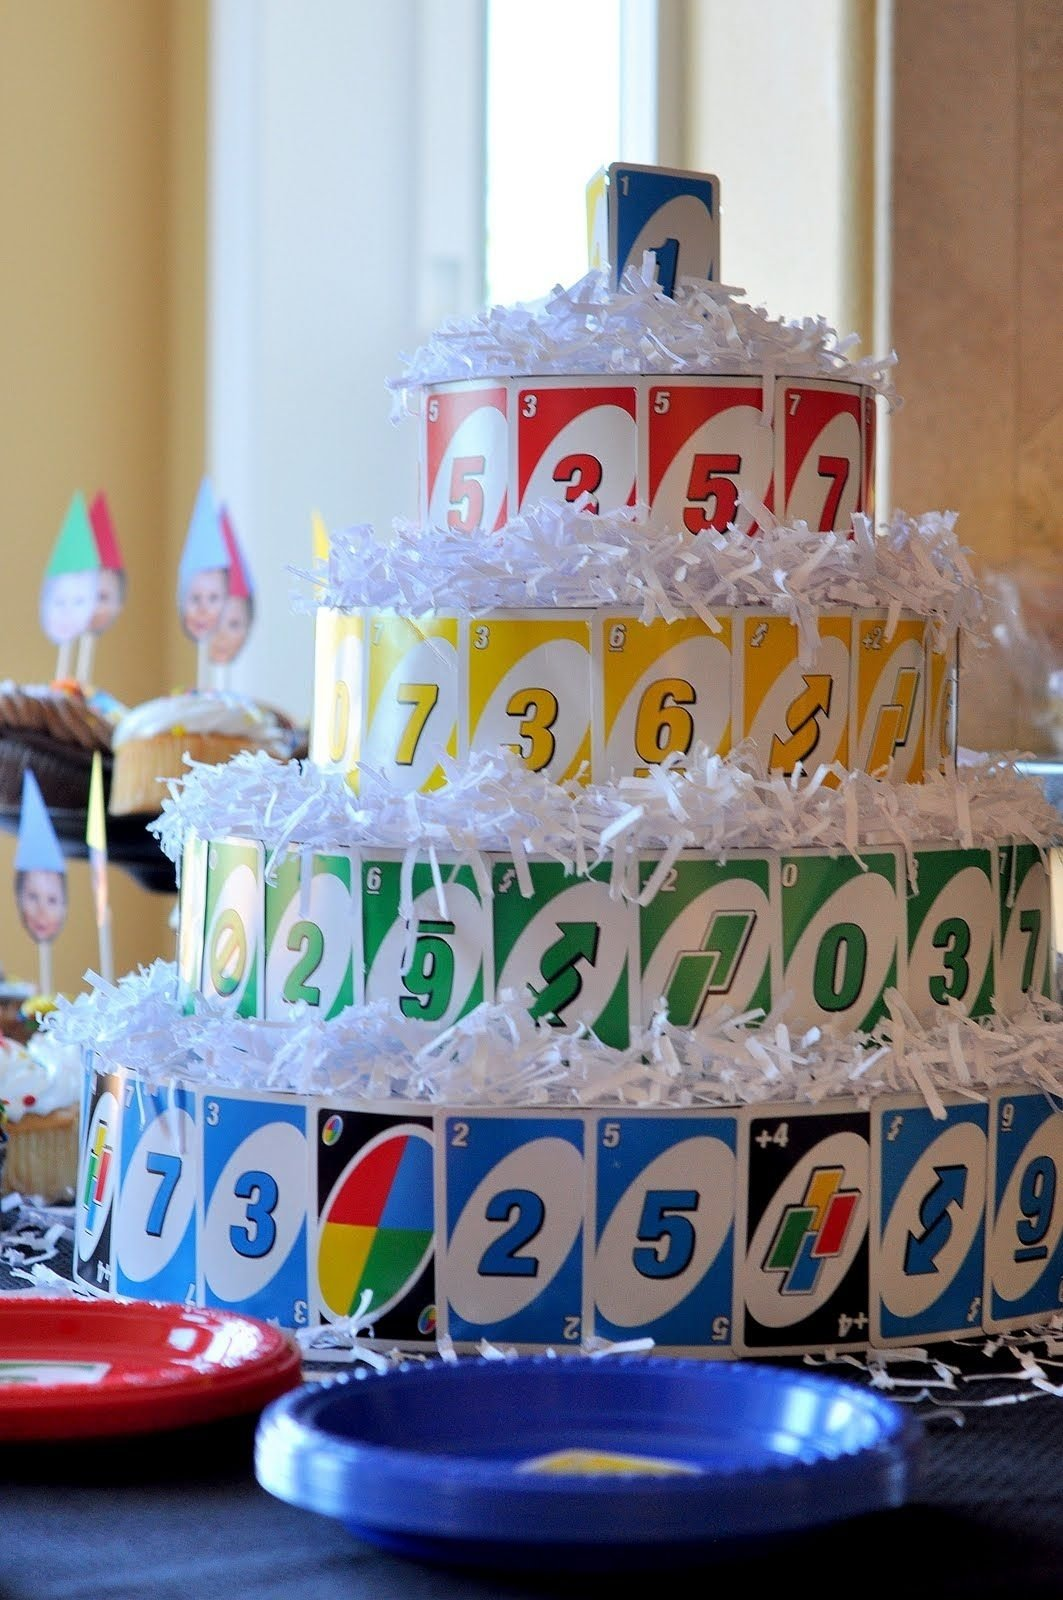 10 Perfect Birthday Party Ideas For Boys Age 10 unique first birthday party ideas wall mounted bathroom 2021